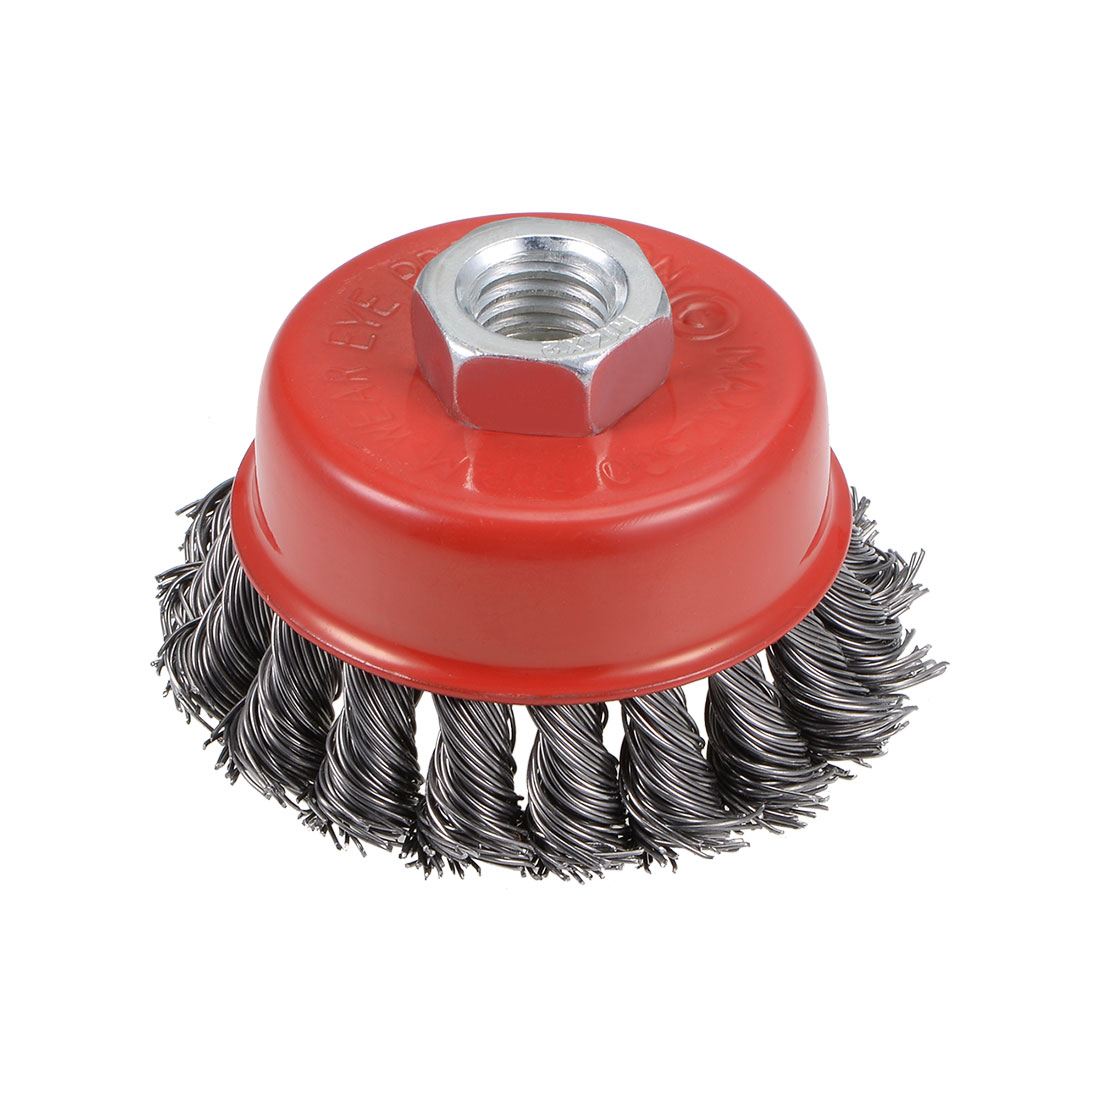 3-Inch Wire Cup Brush Twist Knotted Crimped Steel with Threaded Hole for Grinder